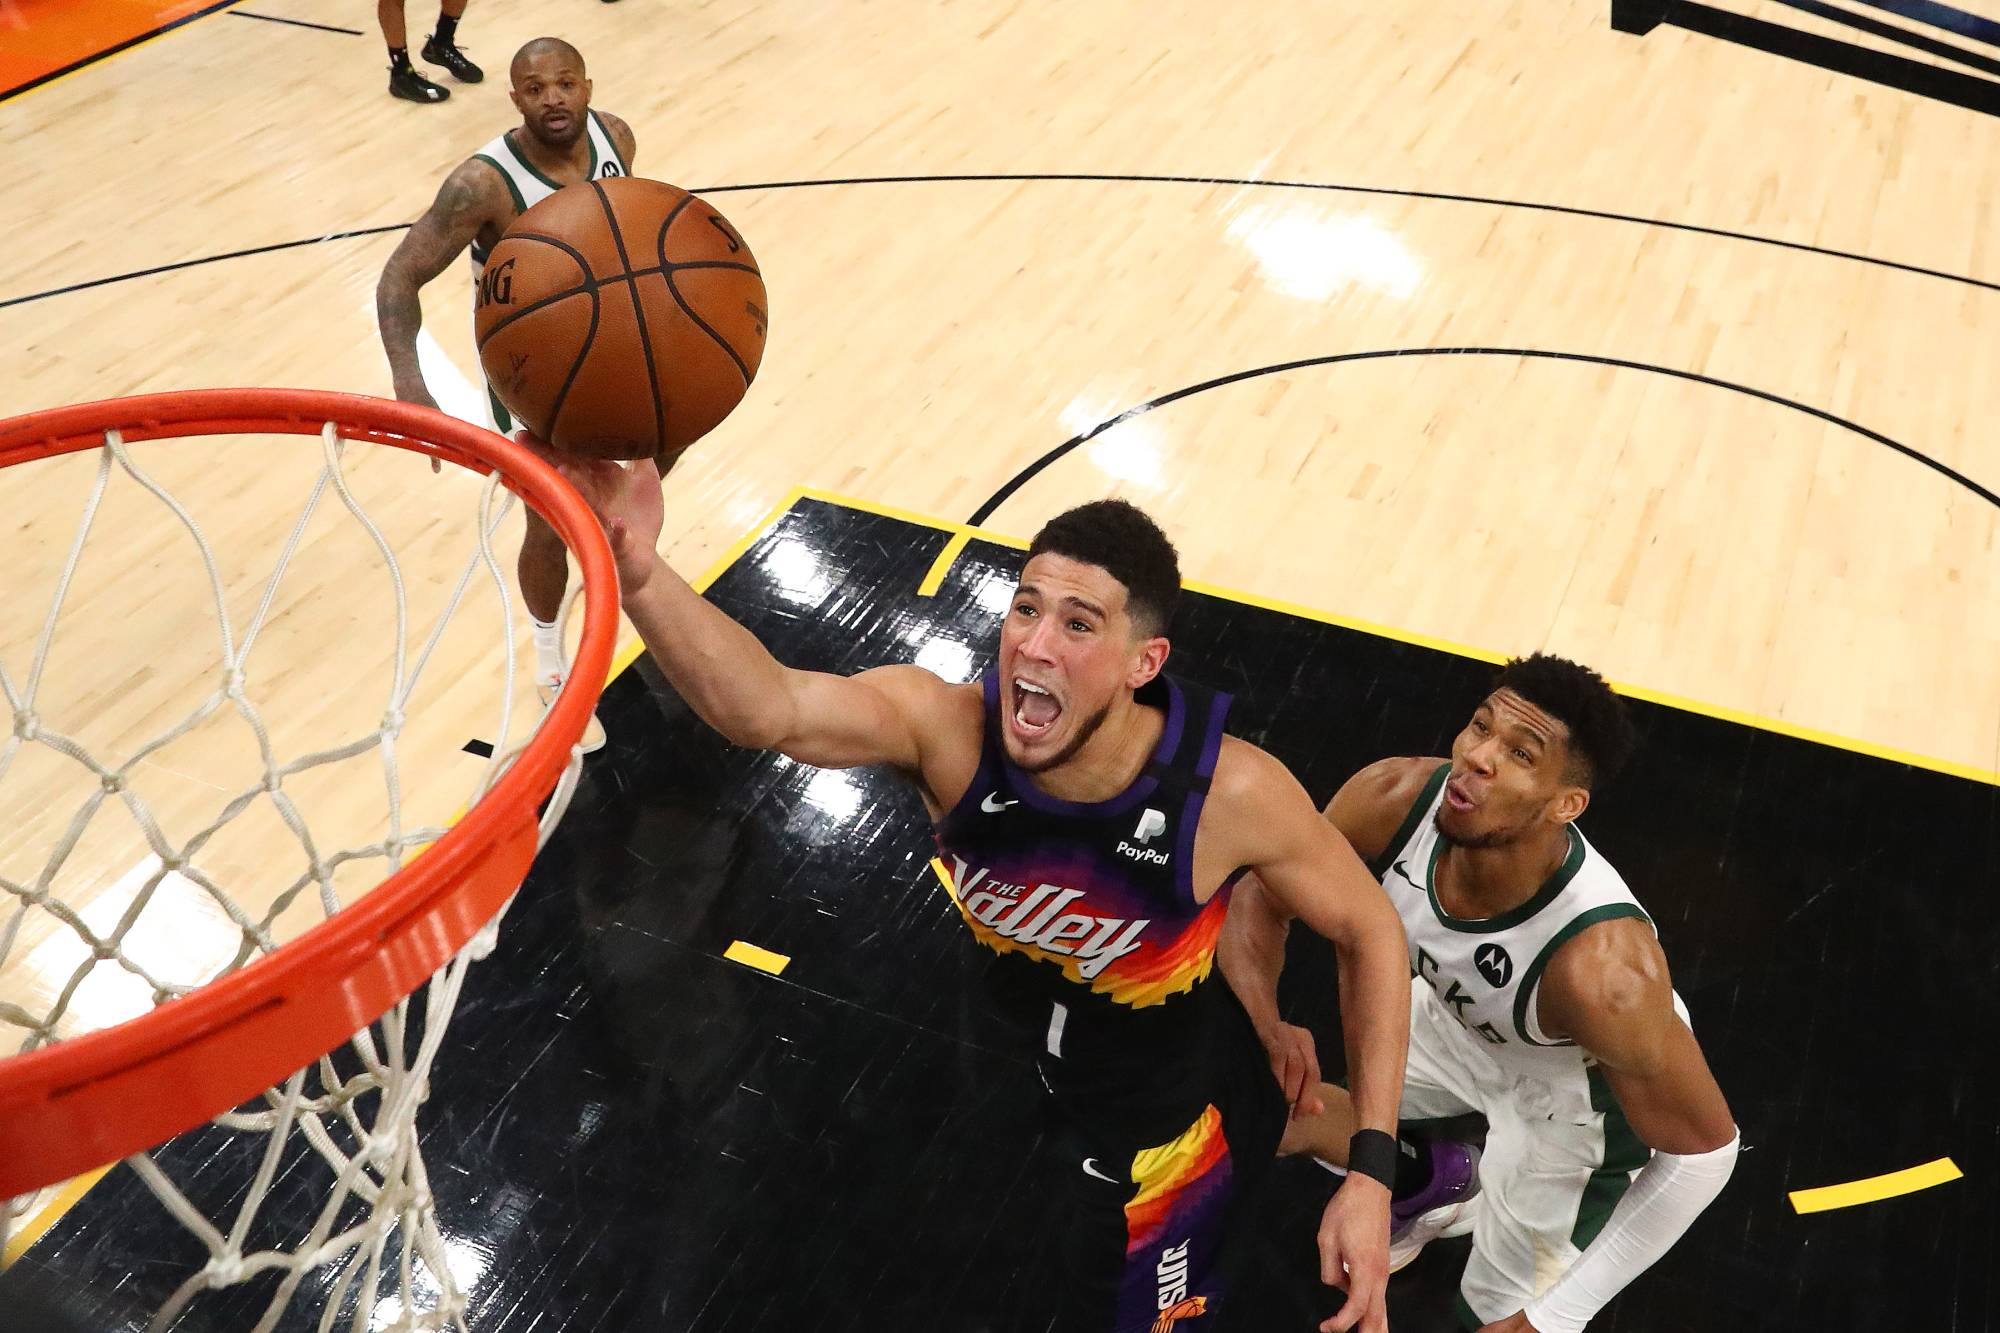 Suns guard Devin Booker shoots the ball past Bucks forward Giannis Antetokounmpo during Game 5 of the NBA Finals at Phoenix Suns Arena on Saturday.  | USA TODAY / VIA REUTERS